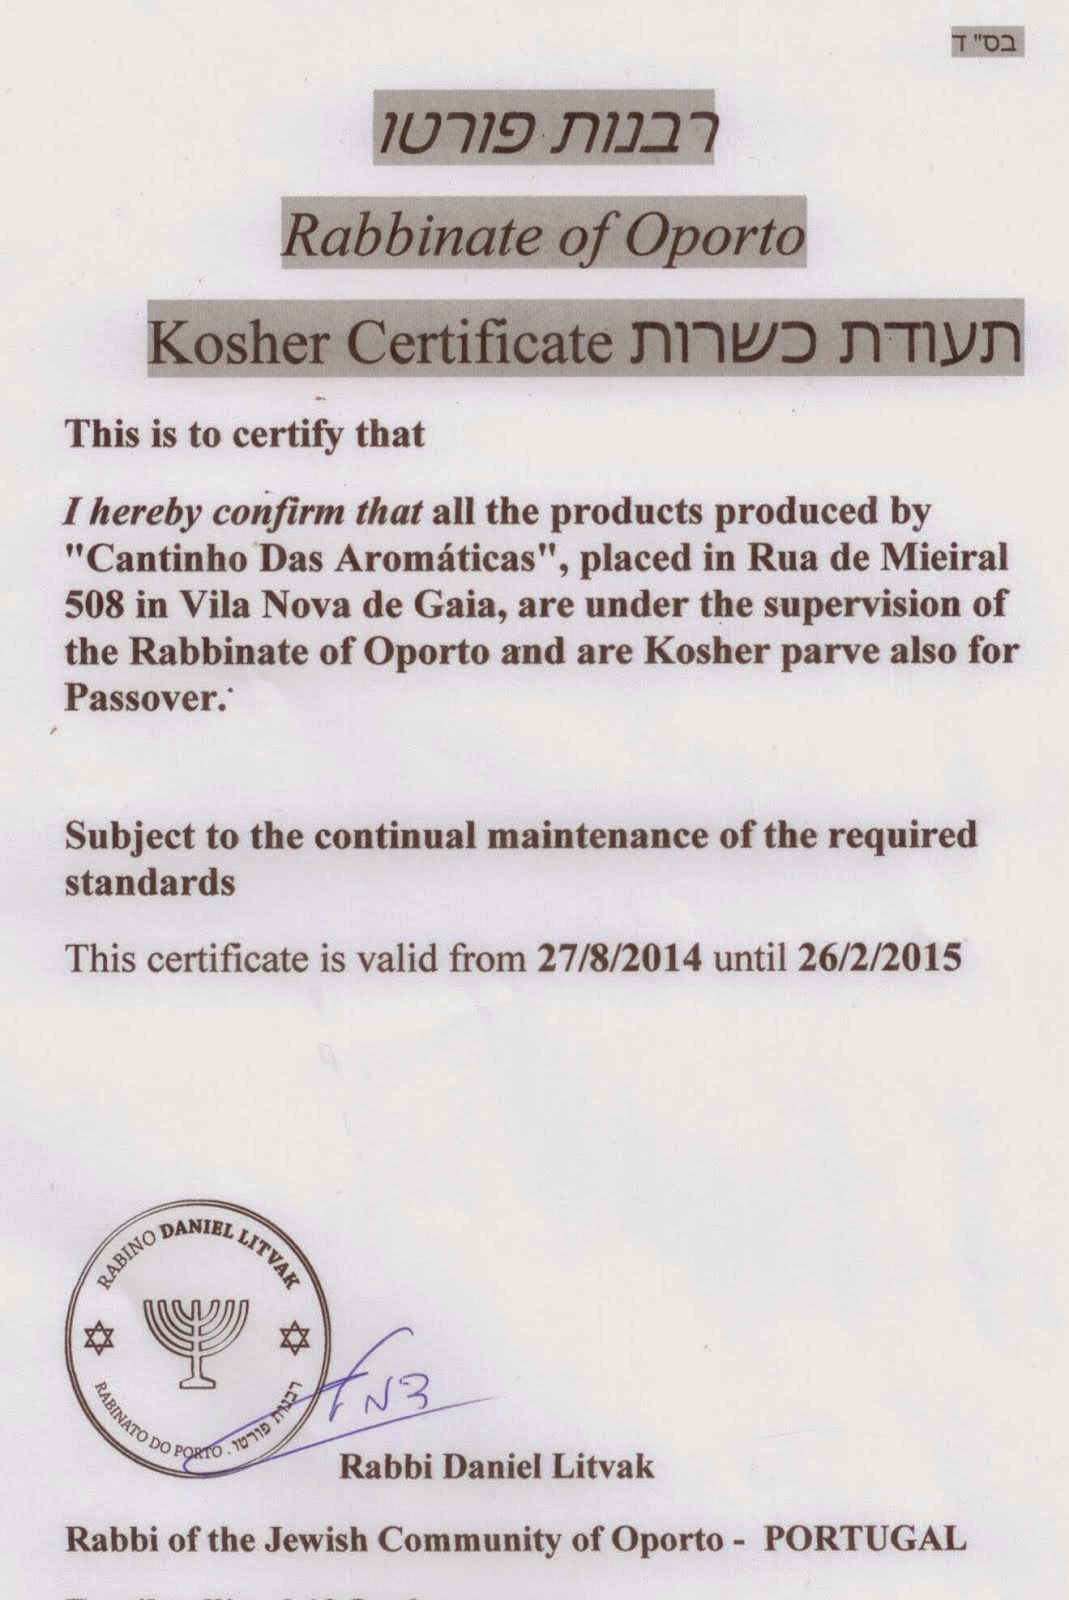 Certificado Kosher 2014-2015